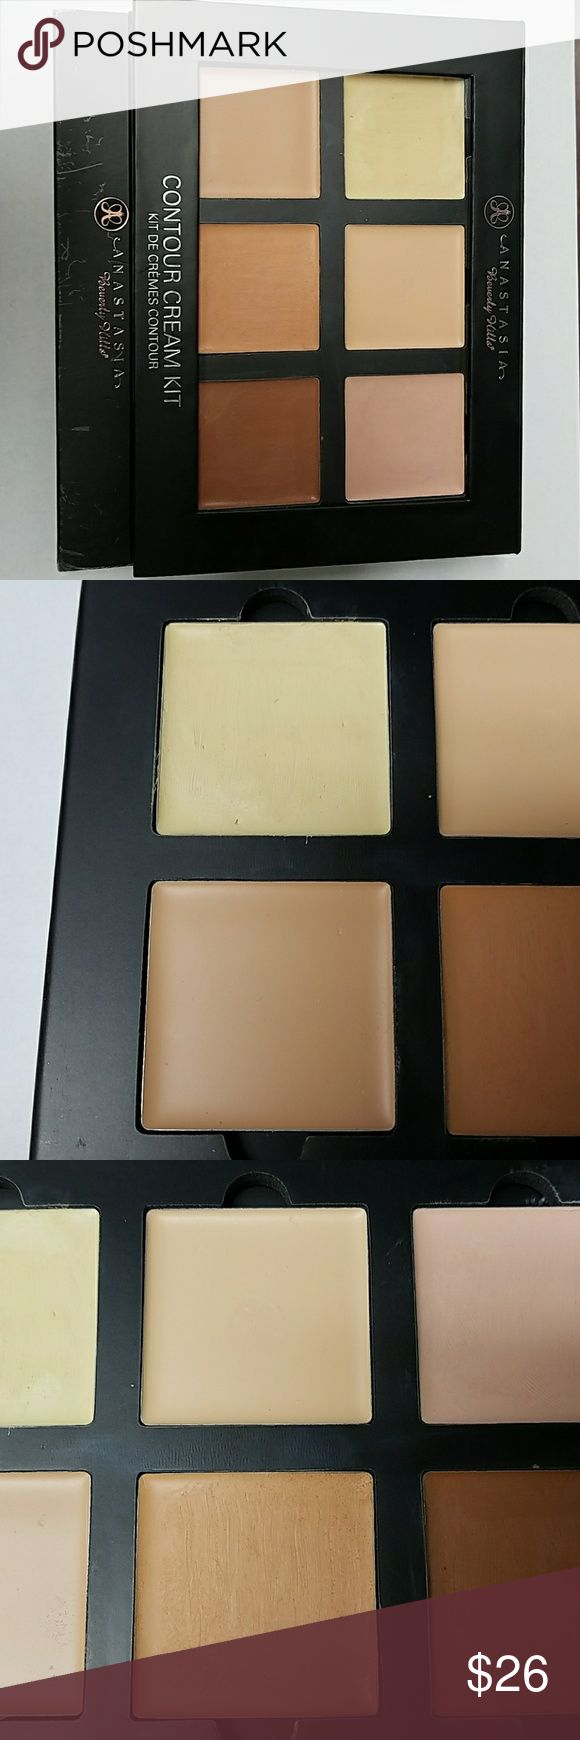 Anastasia Beverley Hills Cream Contour Kit - Light Usage shown in pictures  Banana - Used a few times Vanilla - Swatched Cool Pink - Used a few times Cream - Unused Nude - Used a few times Cinnamon - Used a few times Anastasia Beverly Hills Makeup Concealer